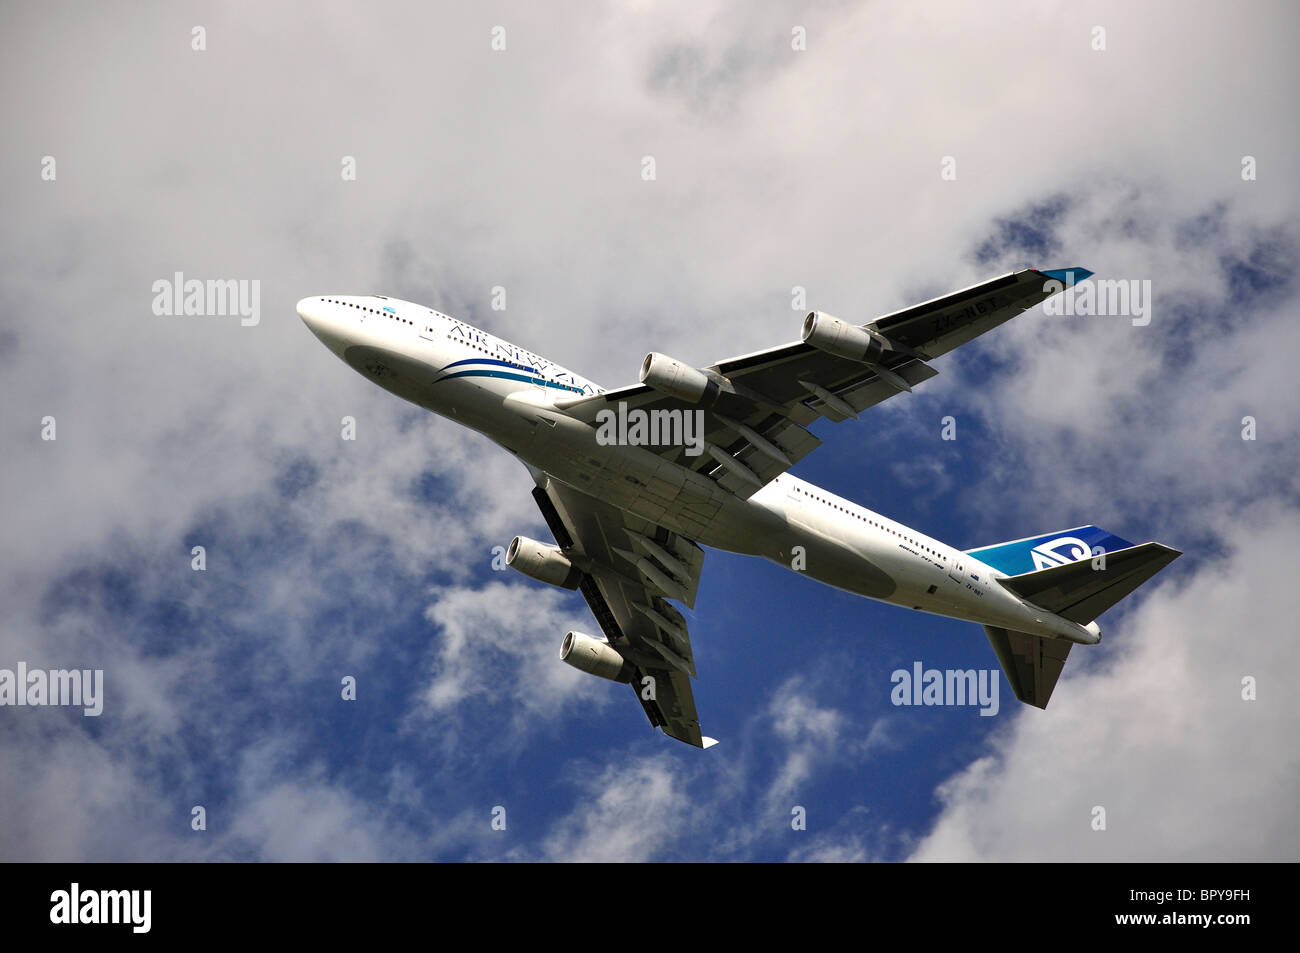 Air New Zealand Boeing 747-400 aircraft taking off from Heathrow Airport, Greater London, England, United Kingdom - Stock Image